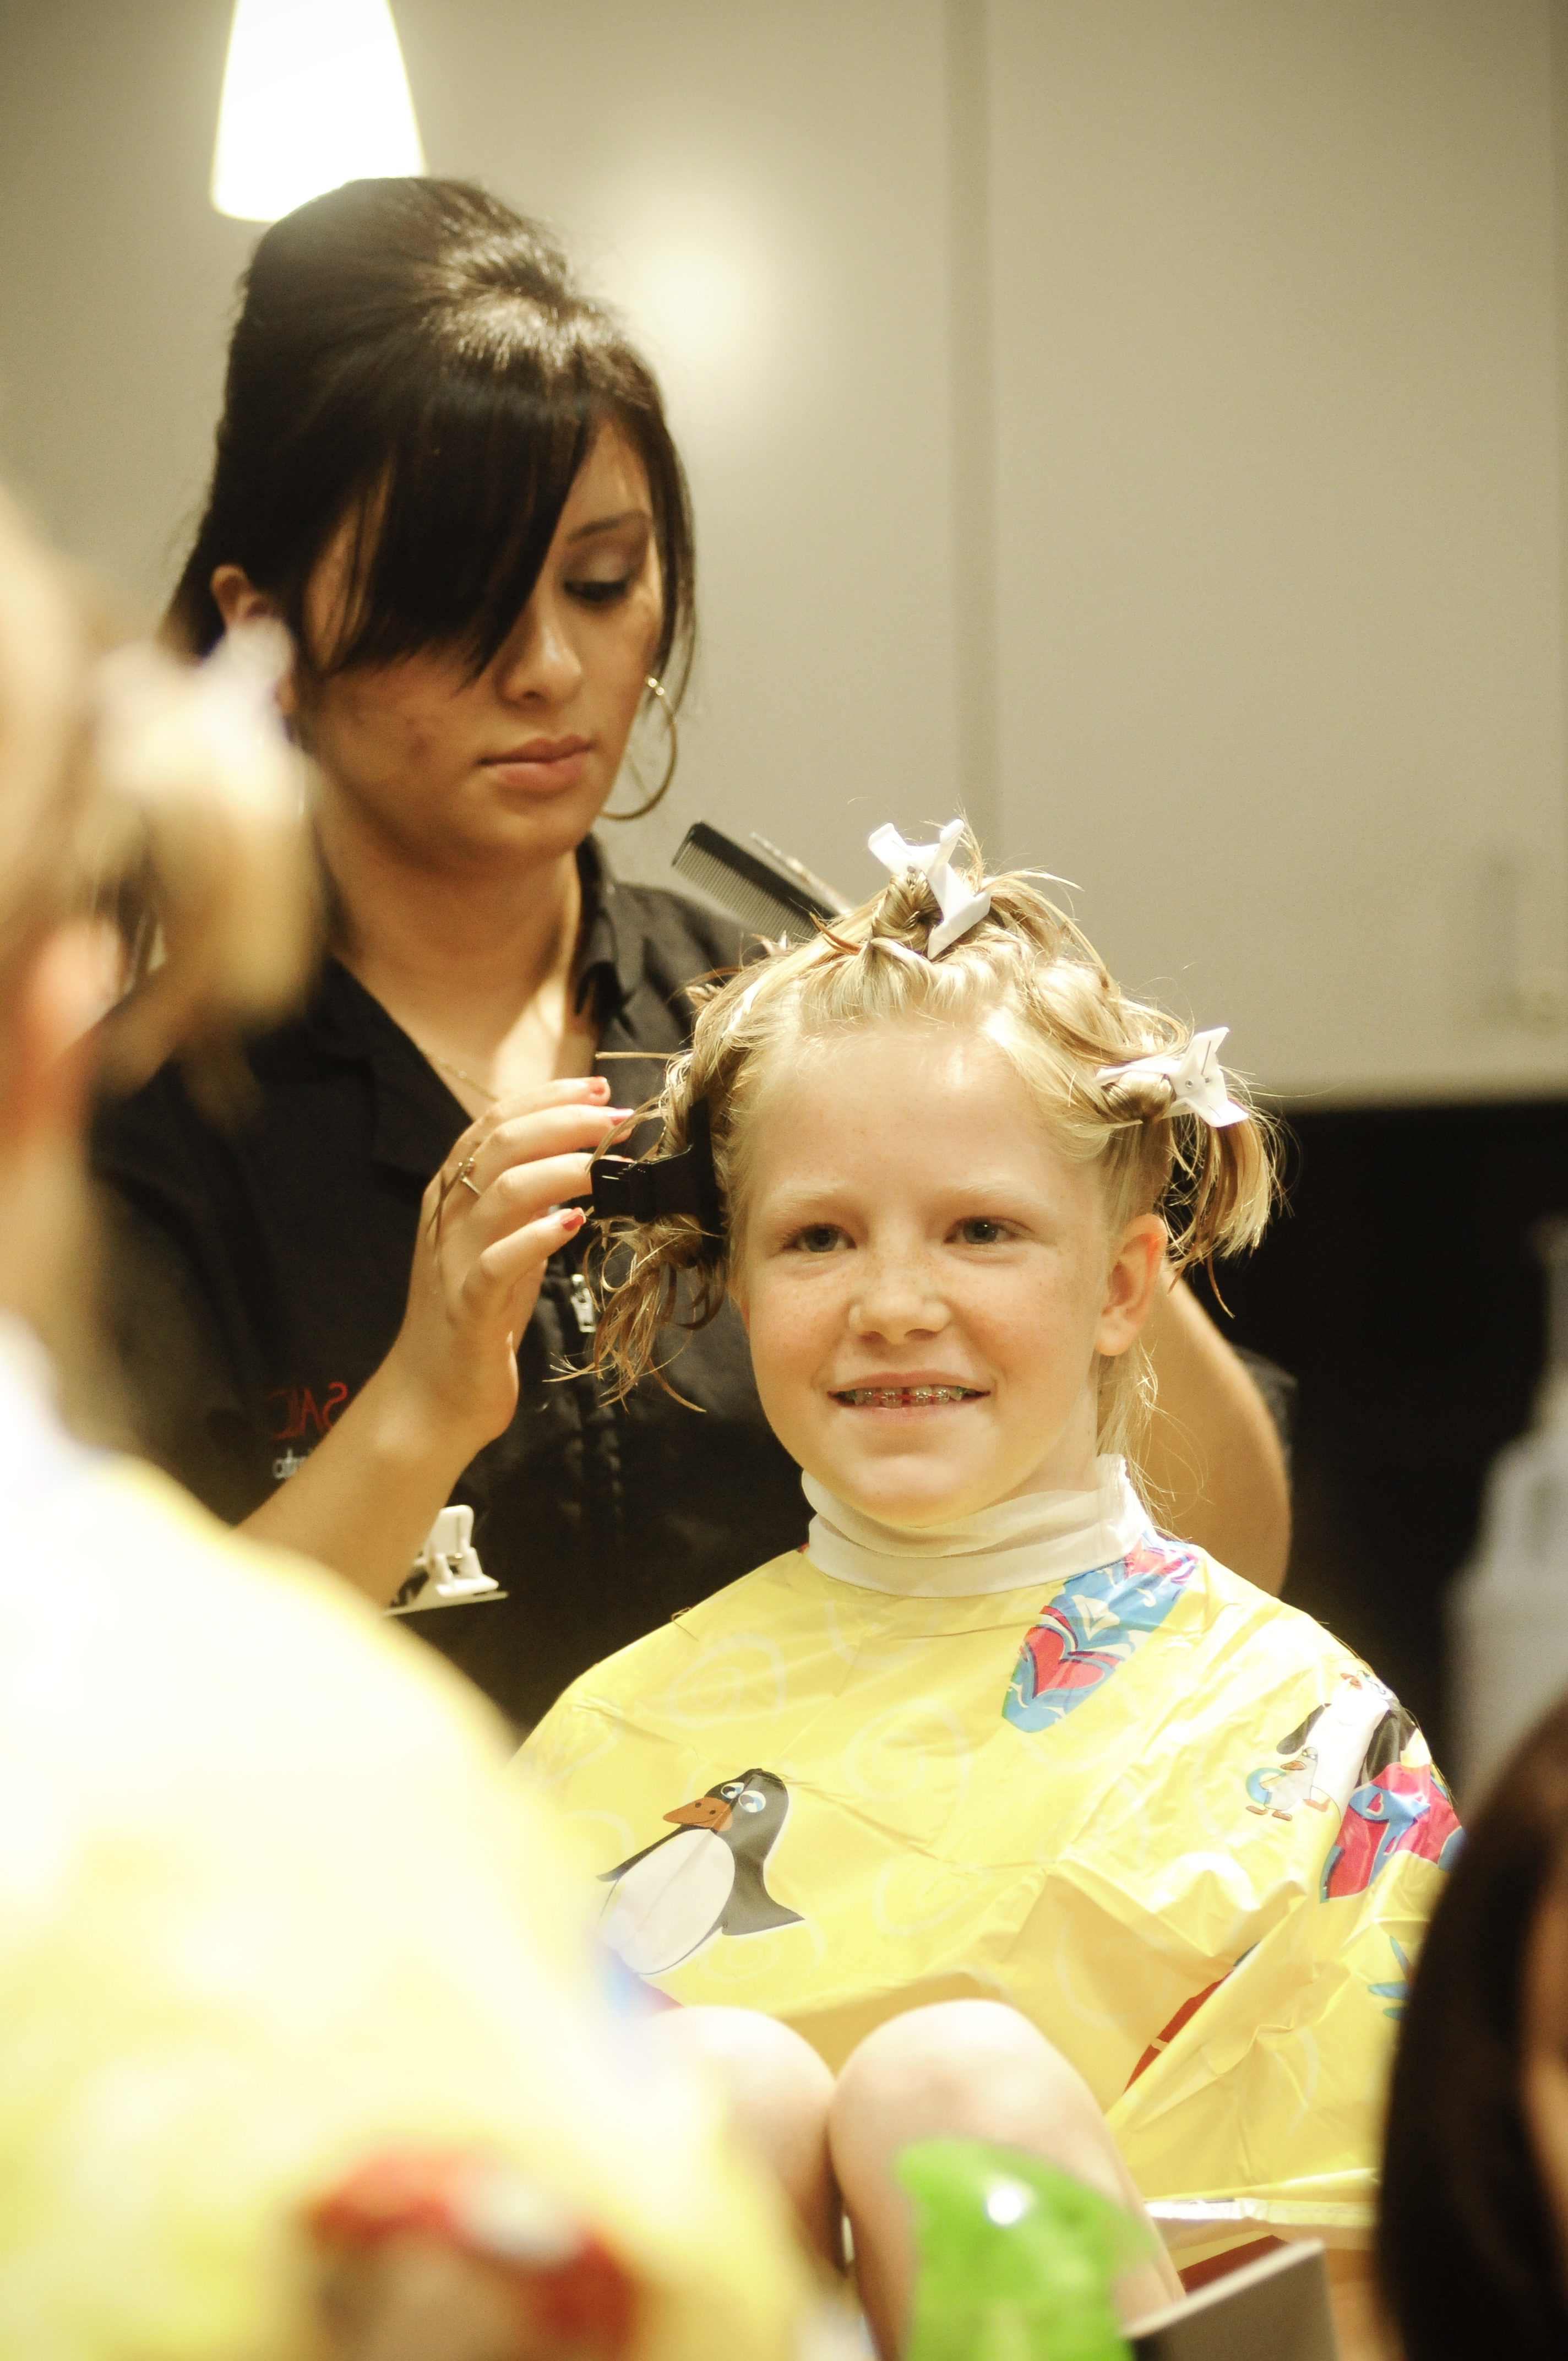 Remington College Cuts for Kids 2009